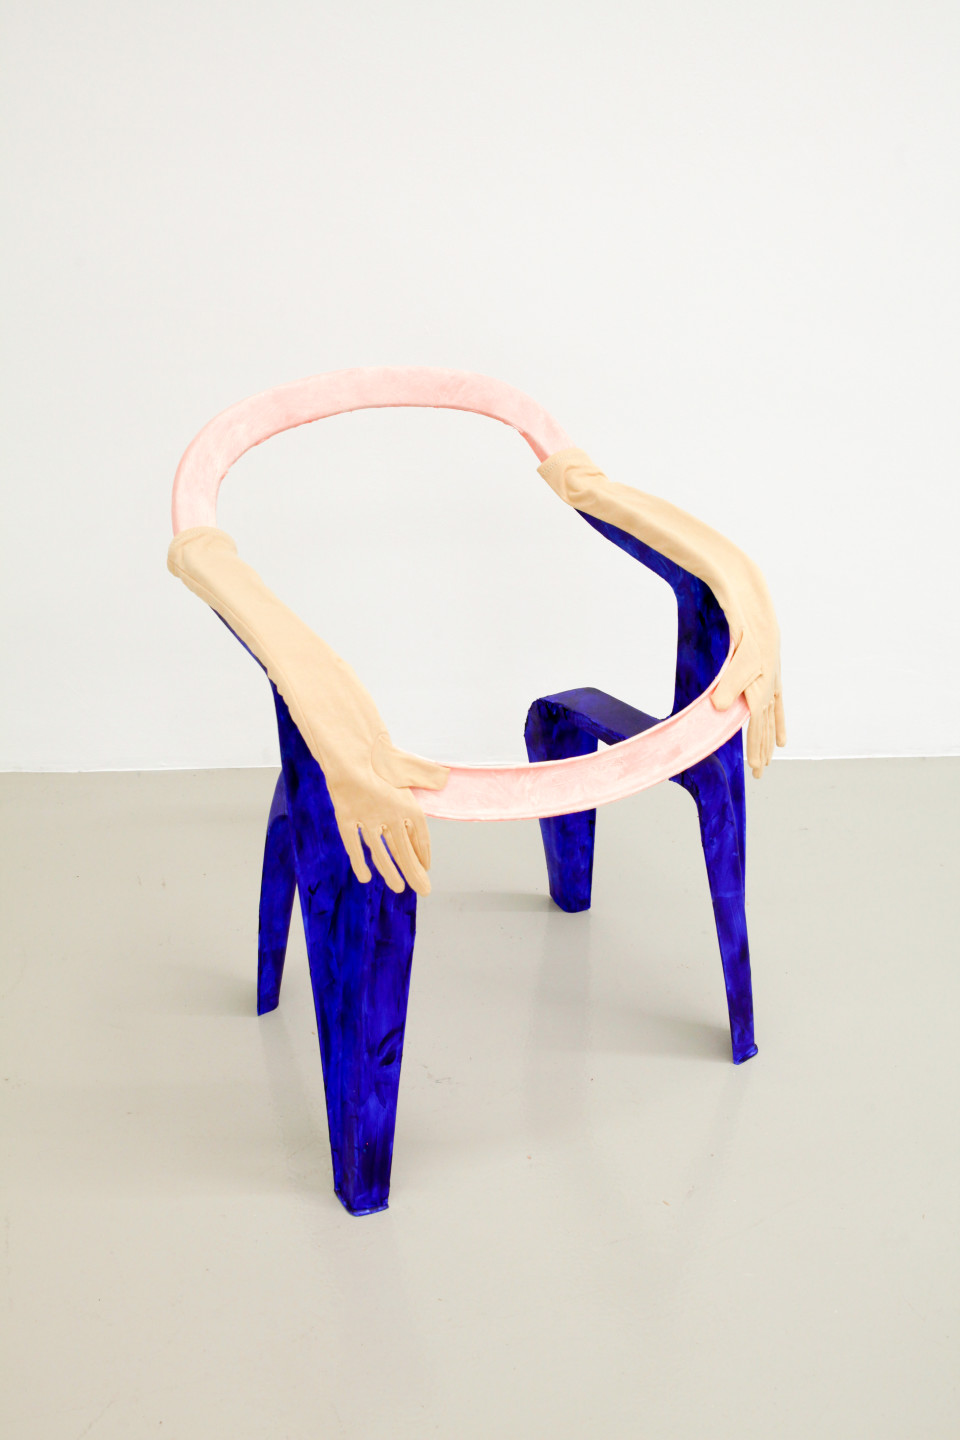 Lindsay Lawson  Jean Dupont, 2018  Garden chair, acrylic, gloves  81 x 57 x 60 cm 31 7/8 x 22 1/2 x 23 5/8 in